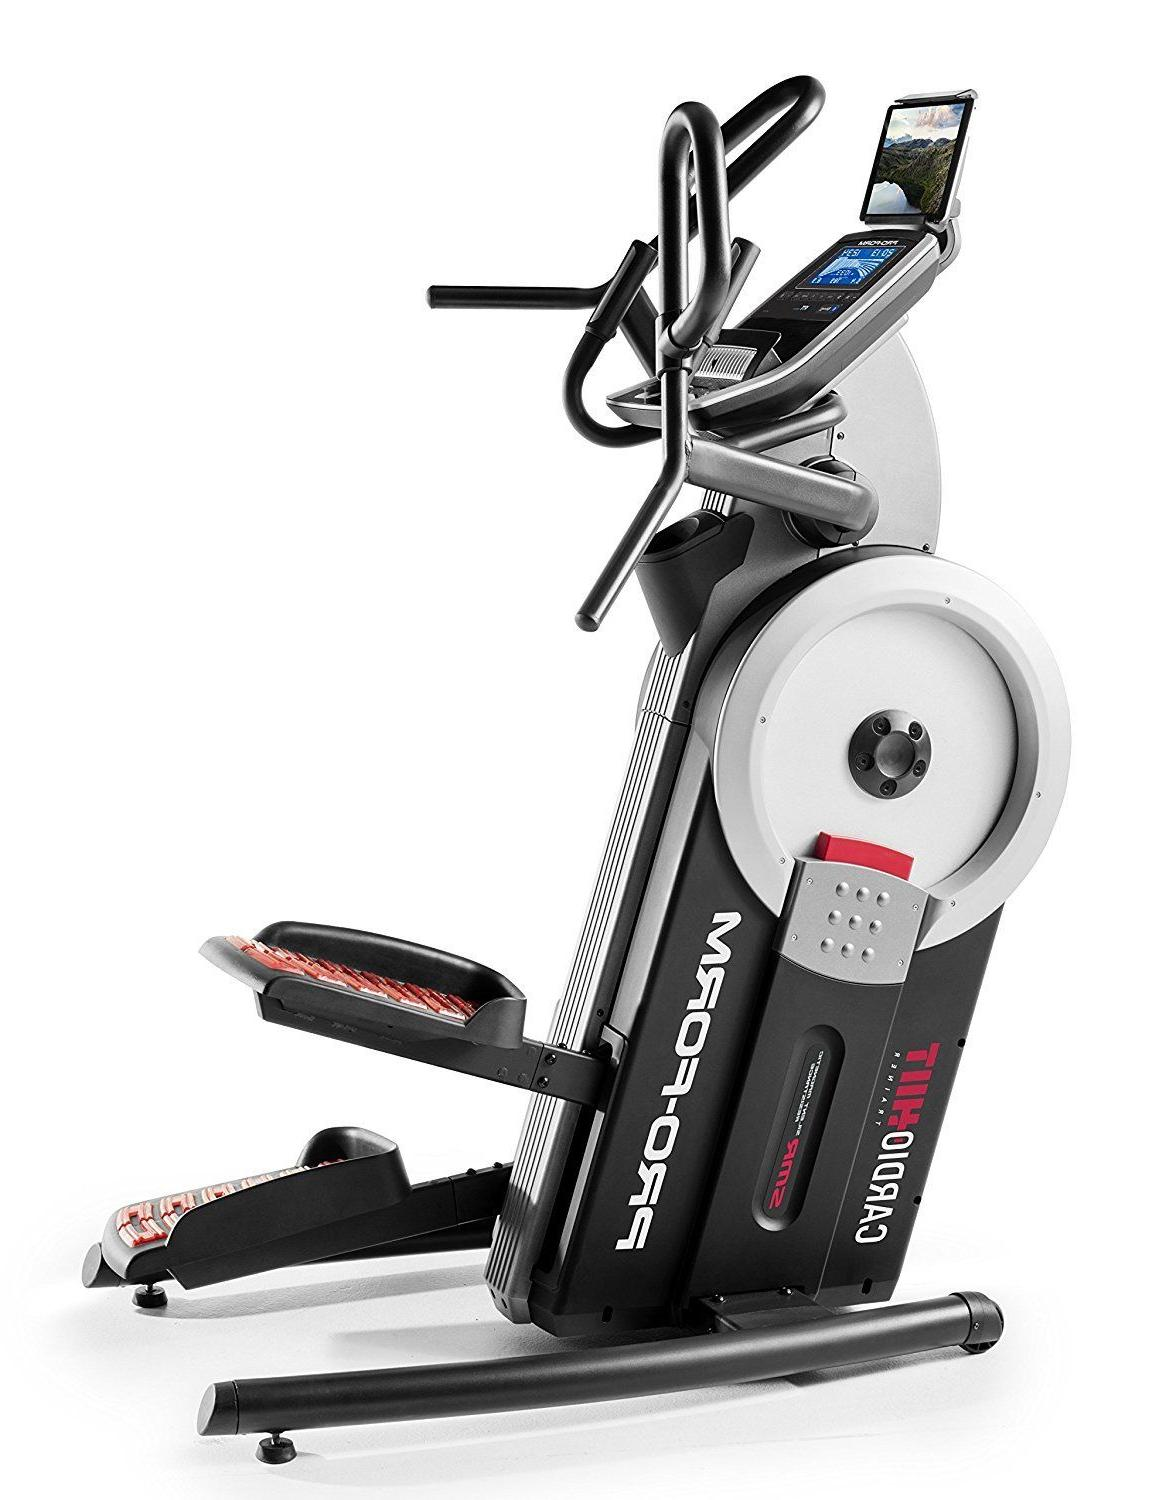 ProForm Elliptical Trainer, Exercise,PFEL09915, with Expert Assembly